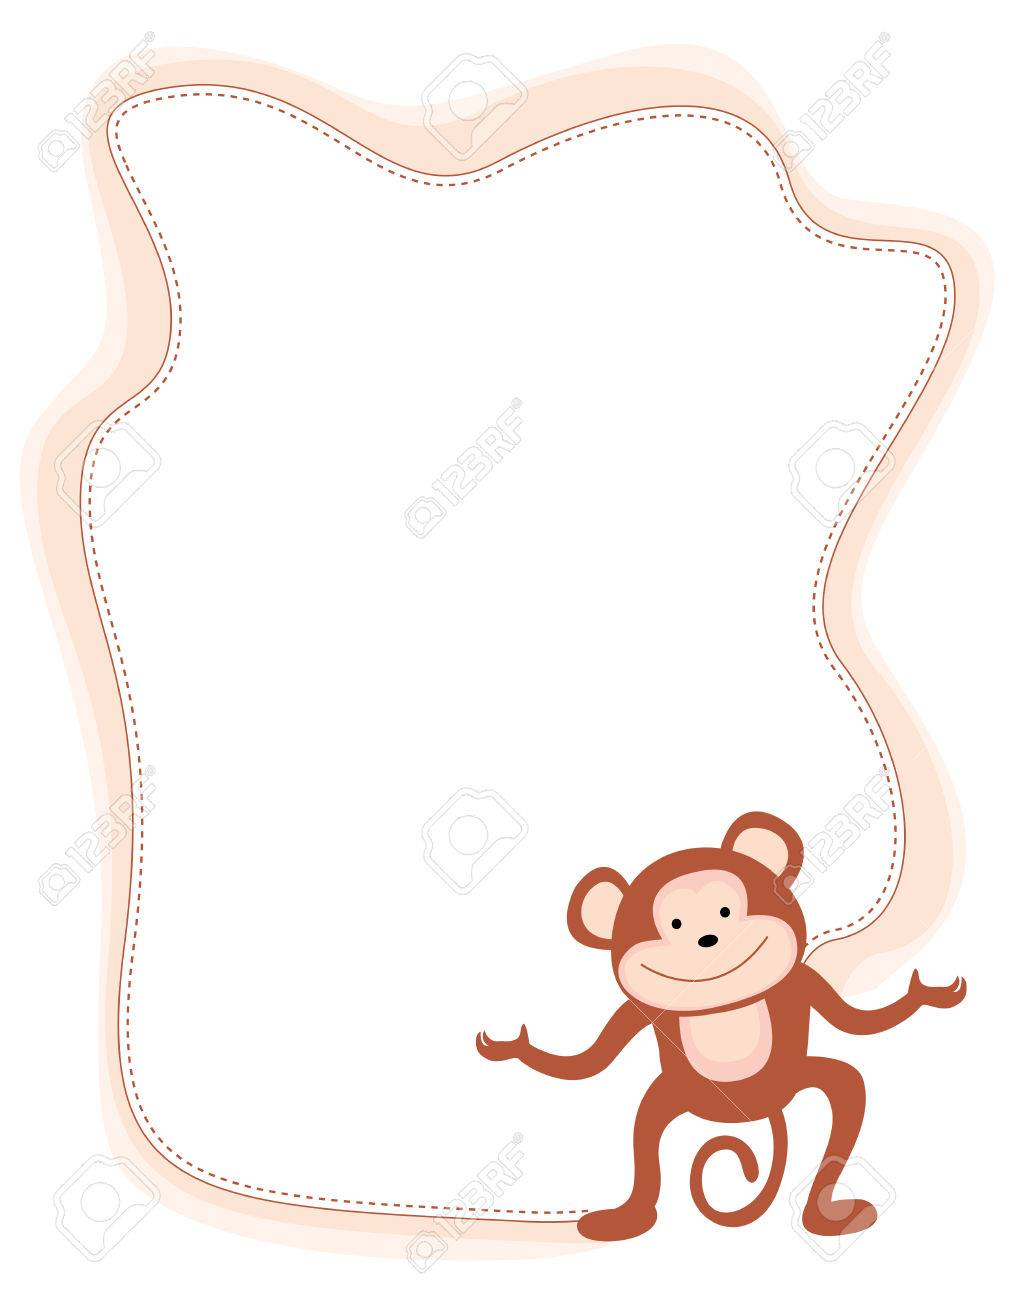 monkey frame with a cute little monkey on corner stock vector 38748037 - Monkey Picture Frame